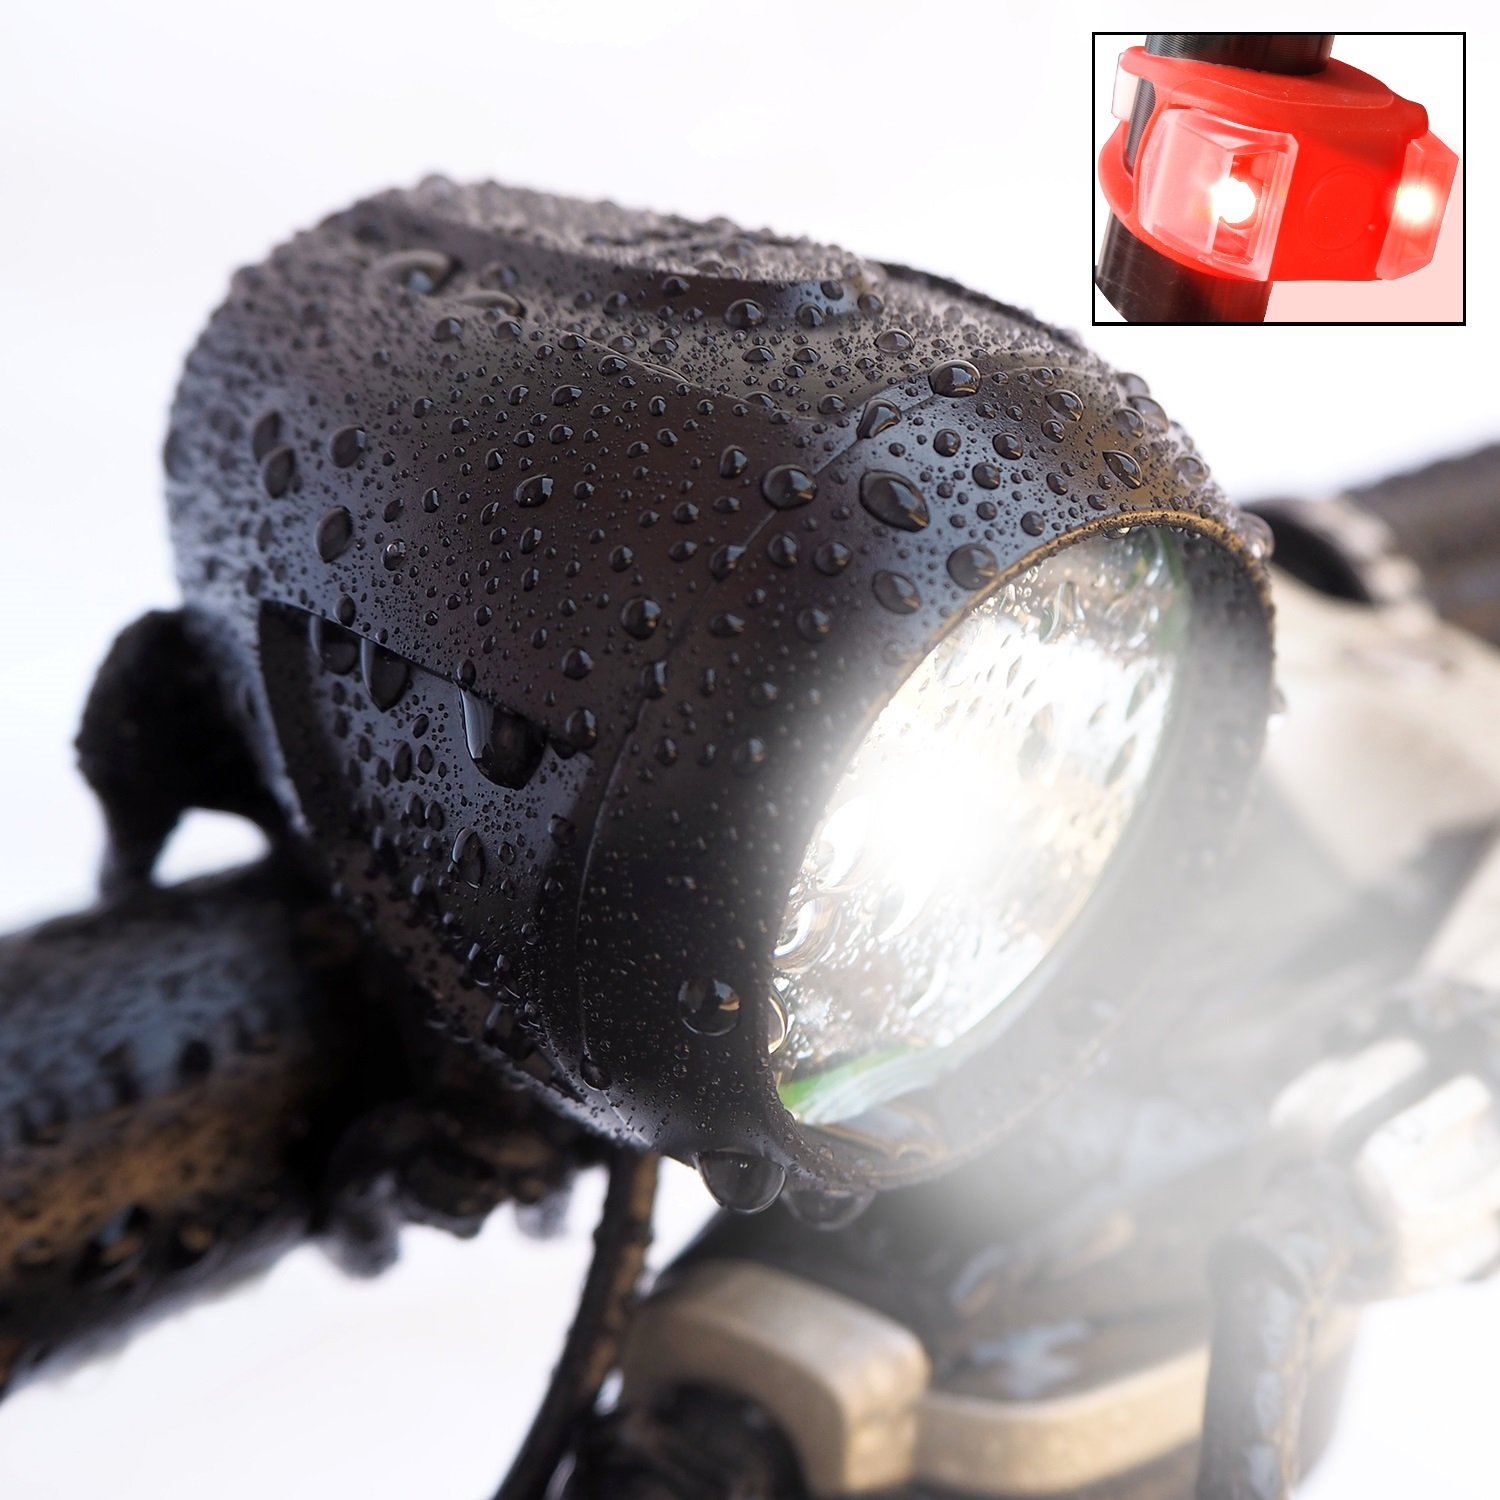 Top 9 Best Bike Lights Reviews in 2020 You Should Check Out 7